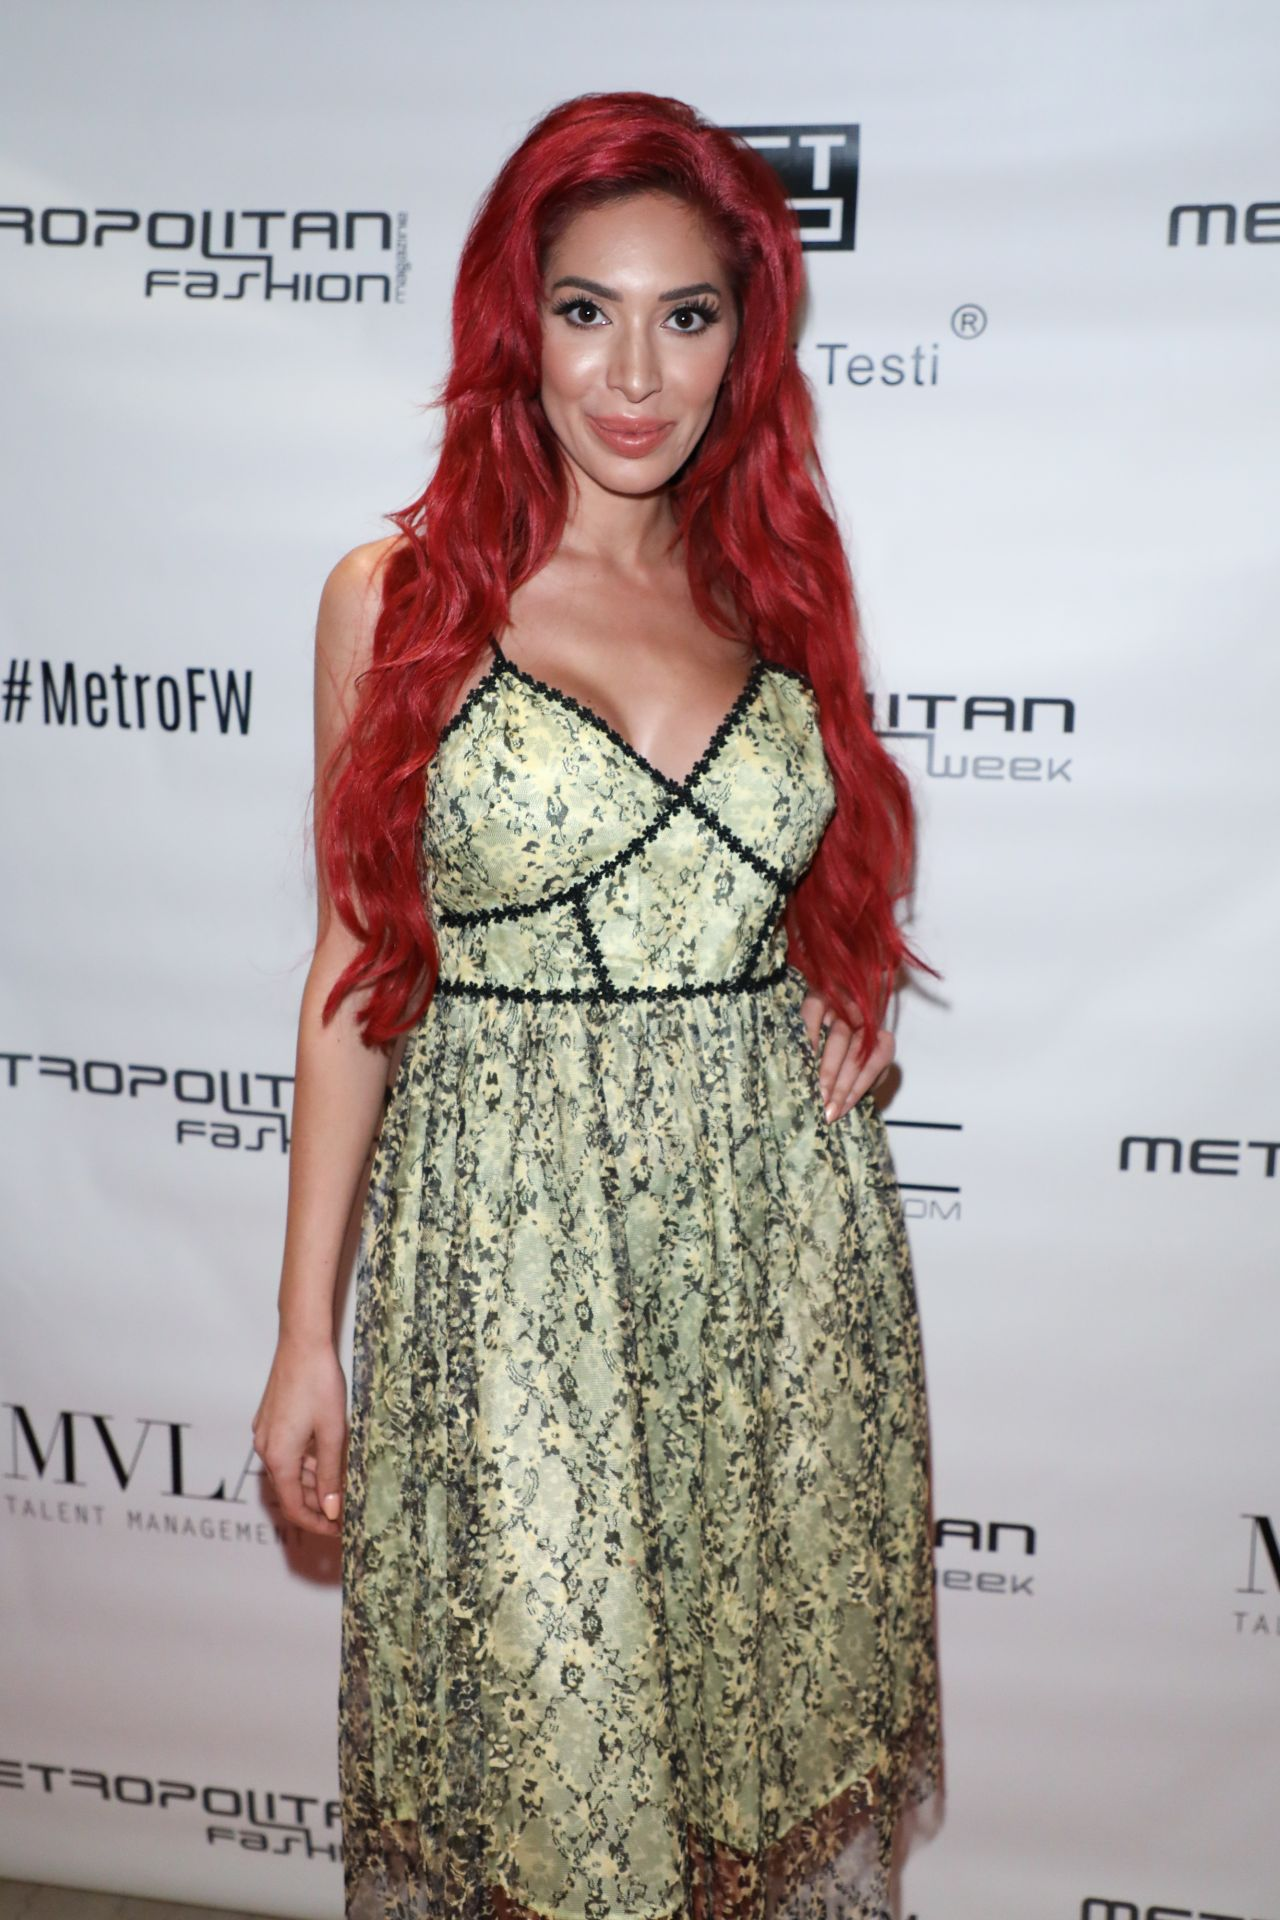 farrah-abraham-metropolitan-fashion-week-in-la-03-29-2018-2.jpg